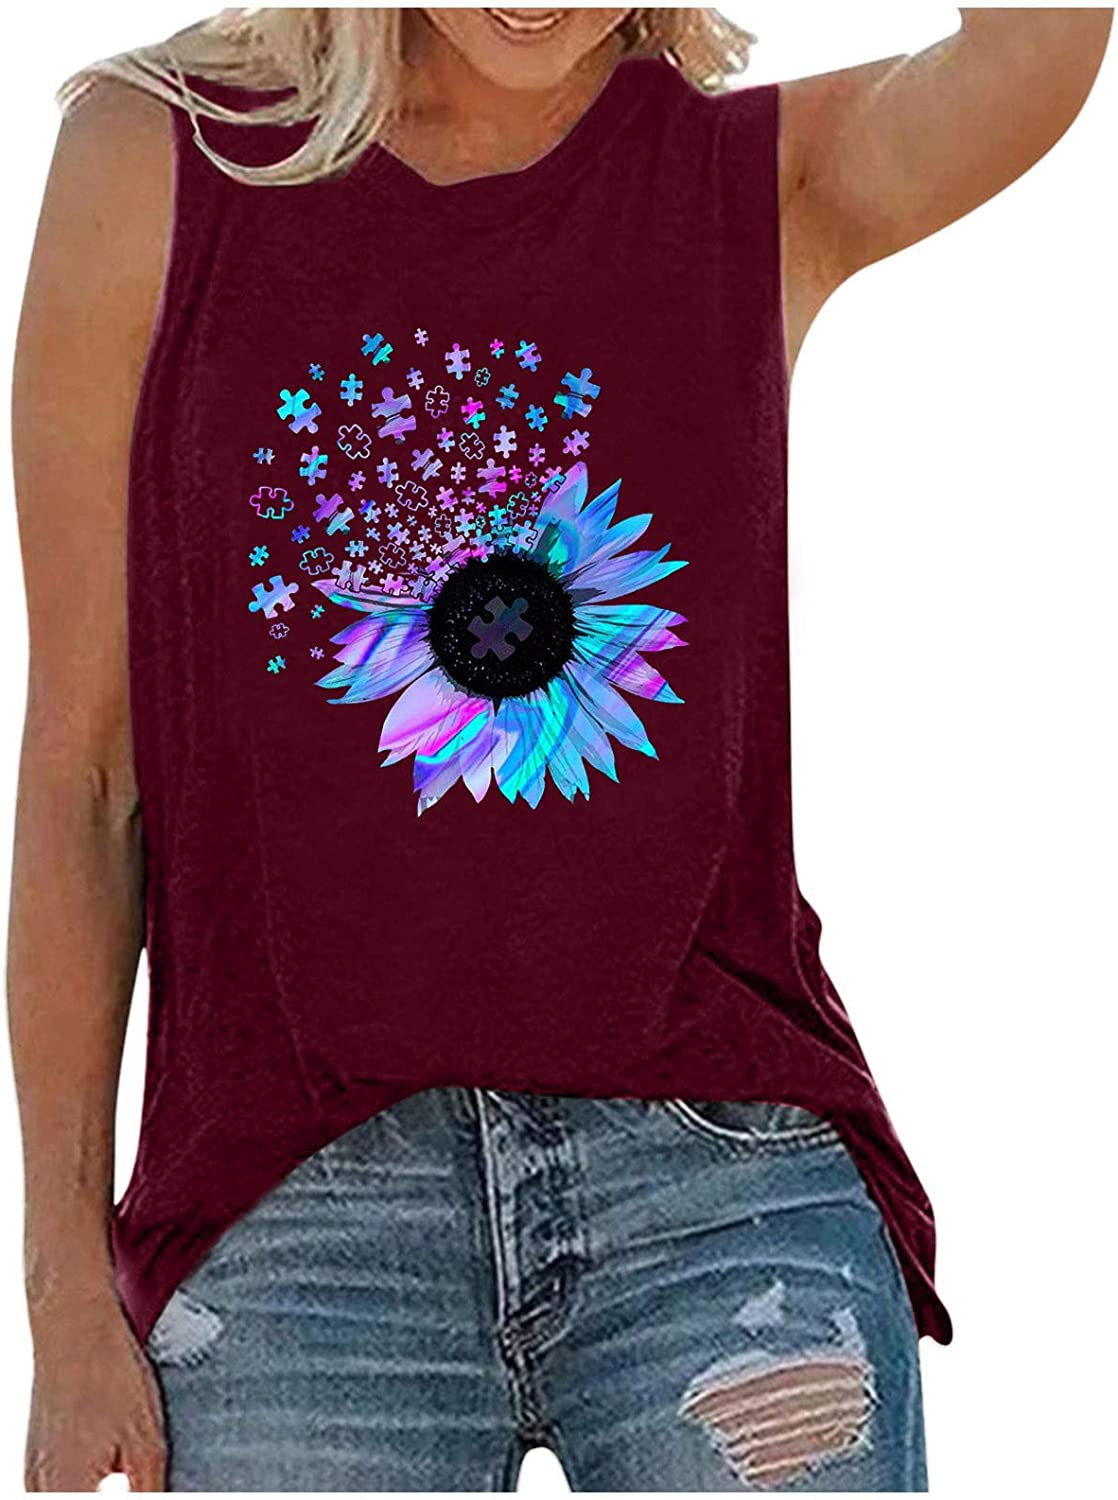 felwors Womens Summer Tops, Cute Summer Tank Tops for Women Casual Graphic Tank Tops Loose Fit Sleeveless Tops Shirts